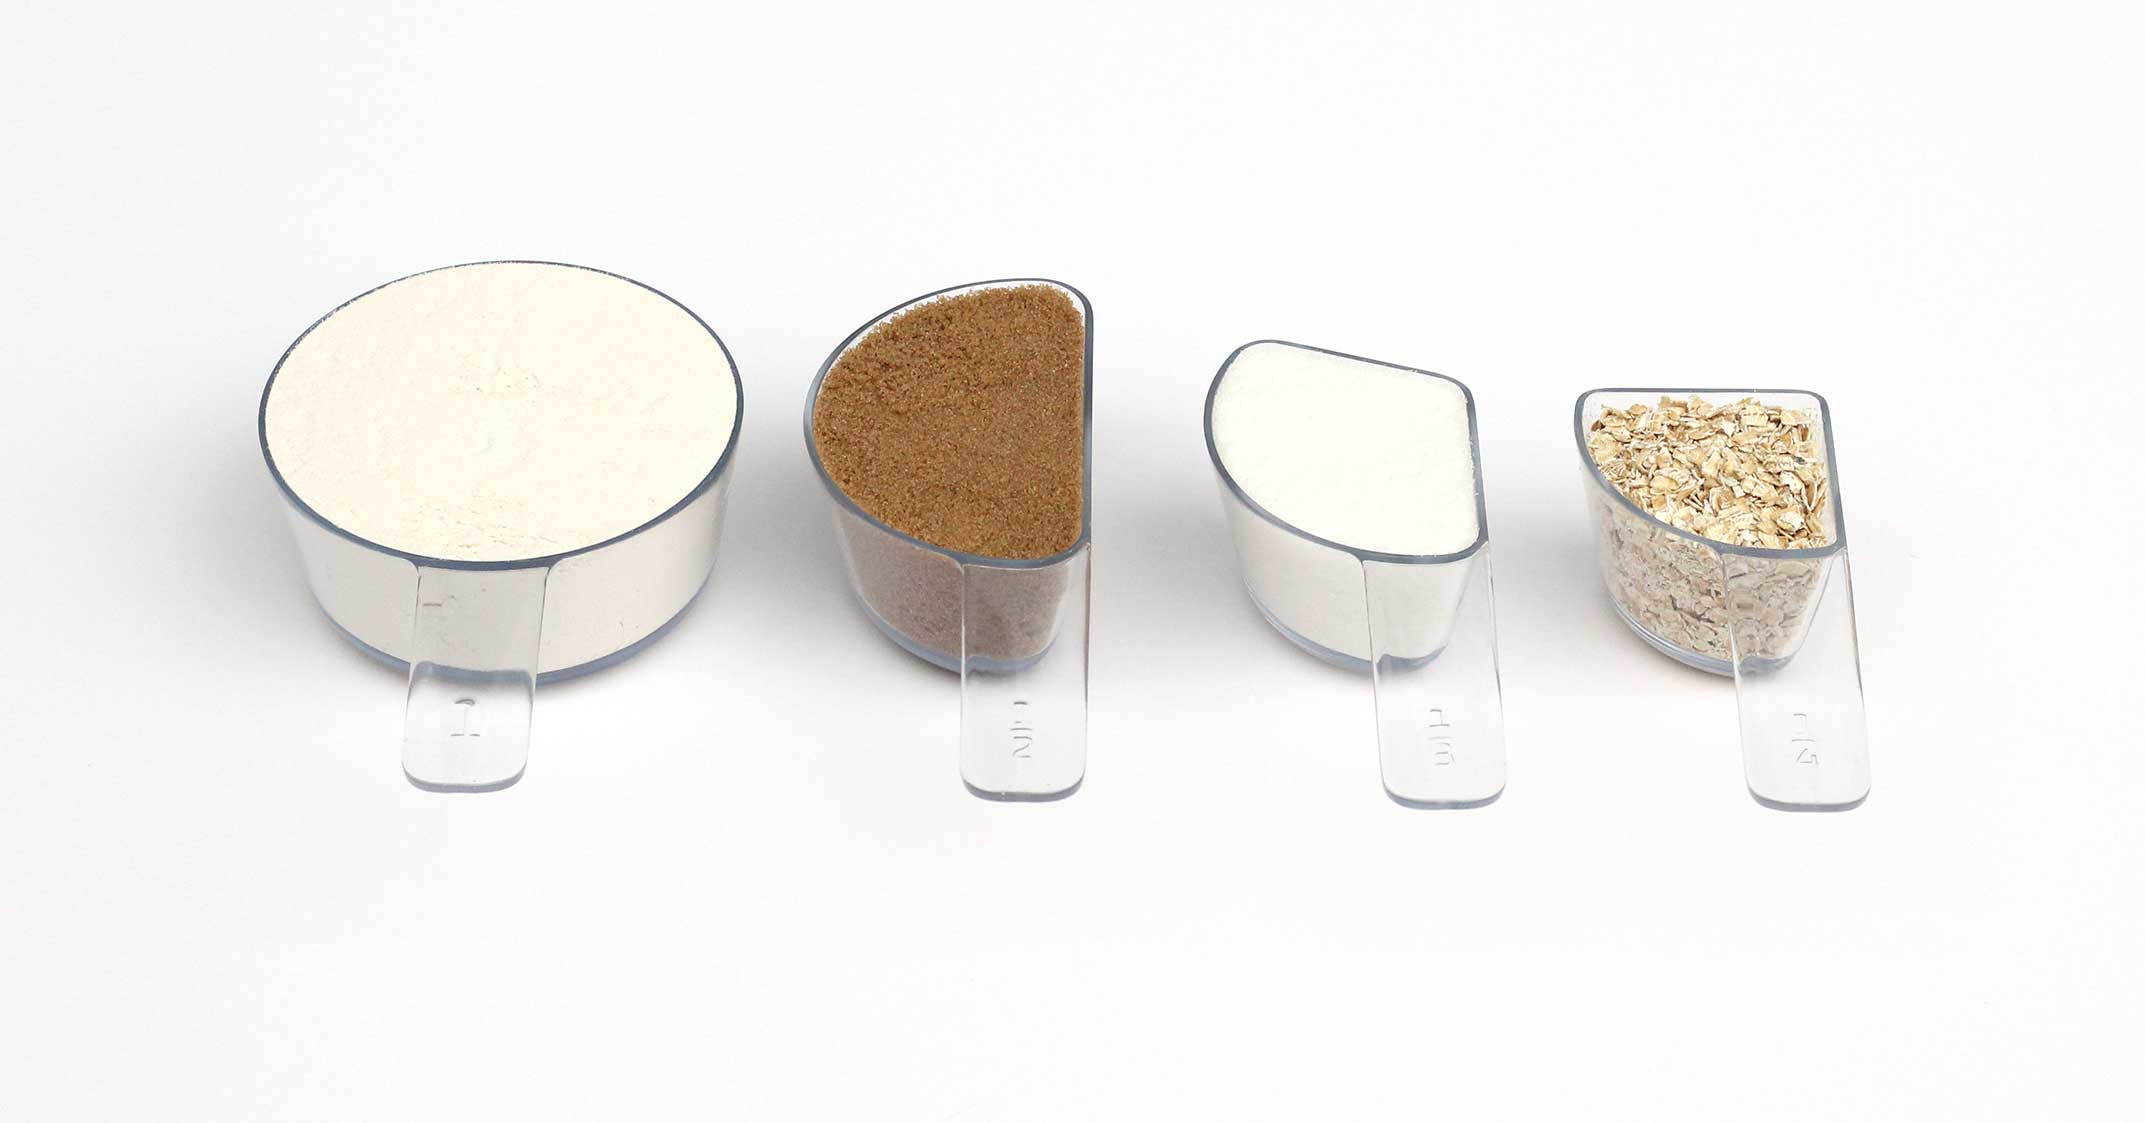 Visual Measuring Cups and Spoons